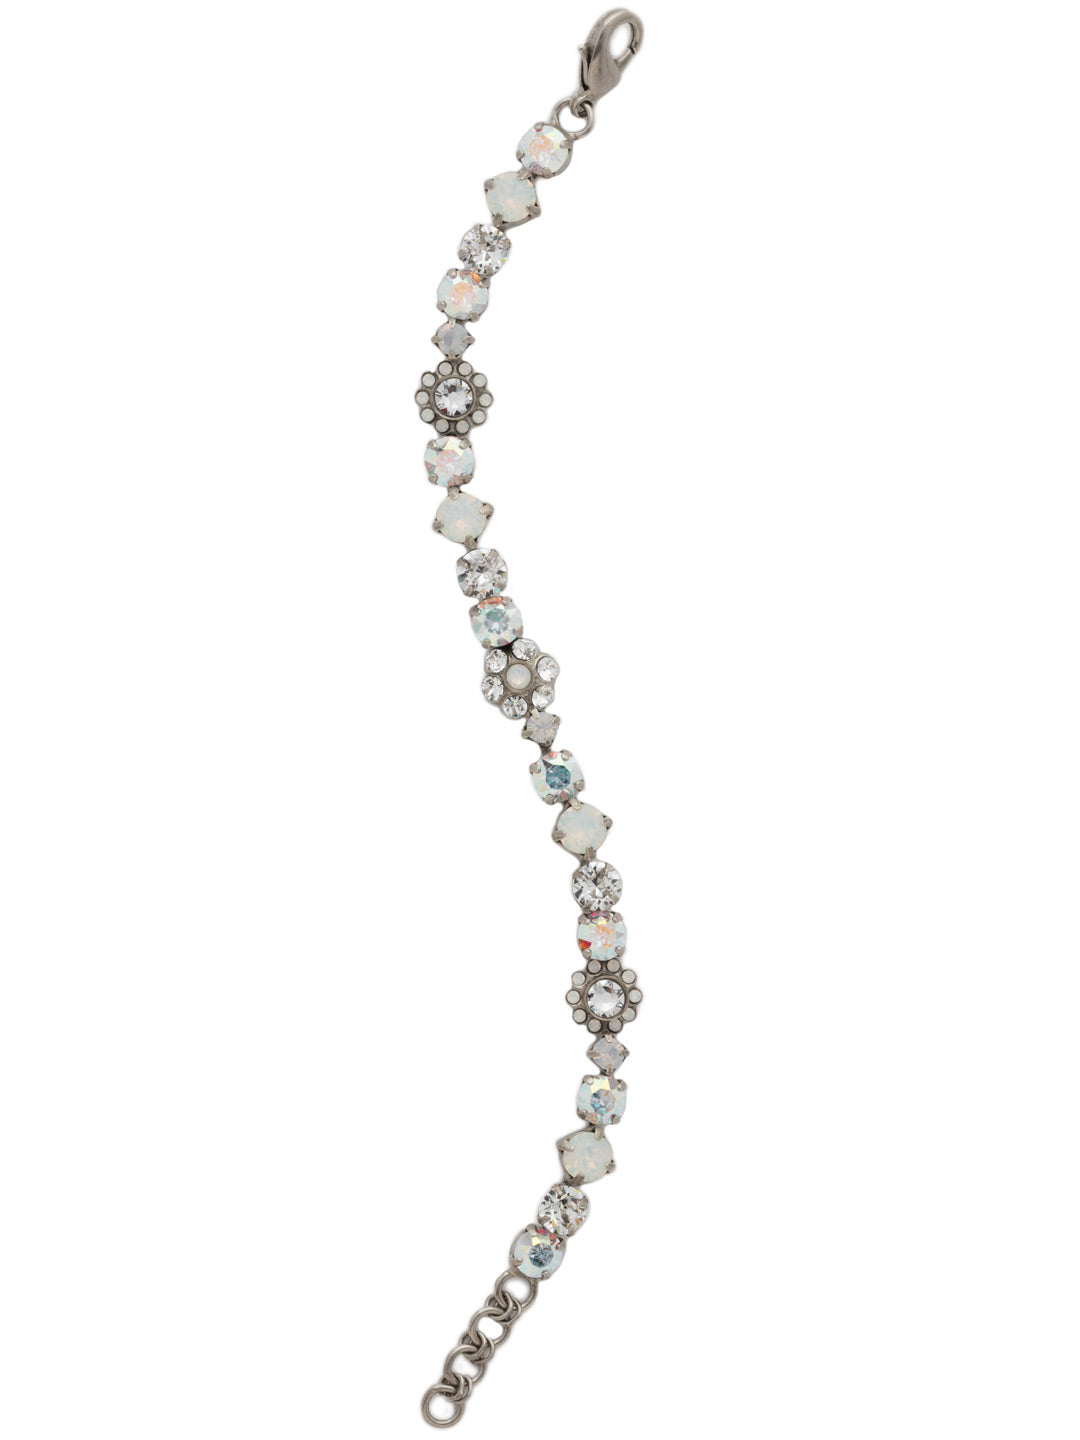 Classic Crystal Floral Bracelet - BBE2ASWBR